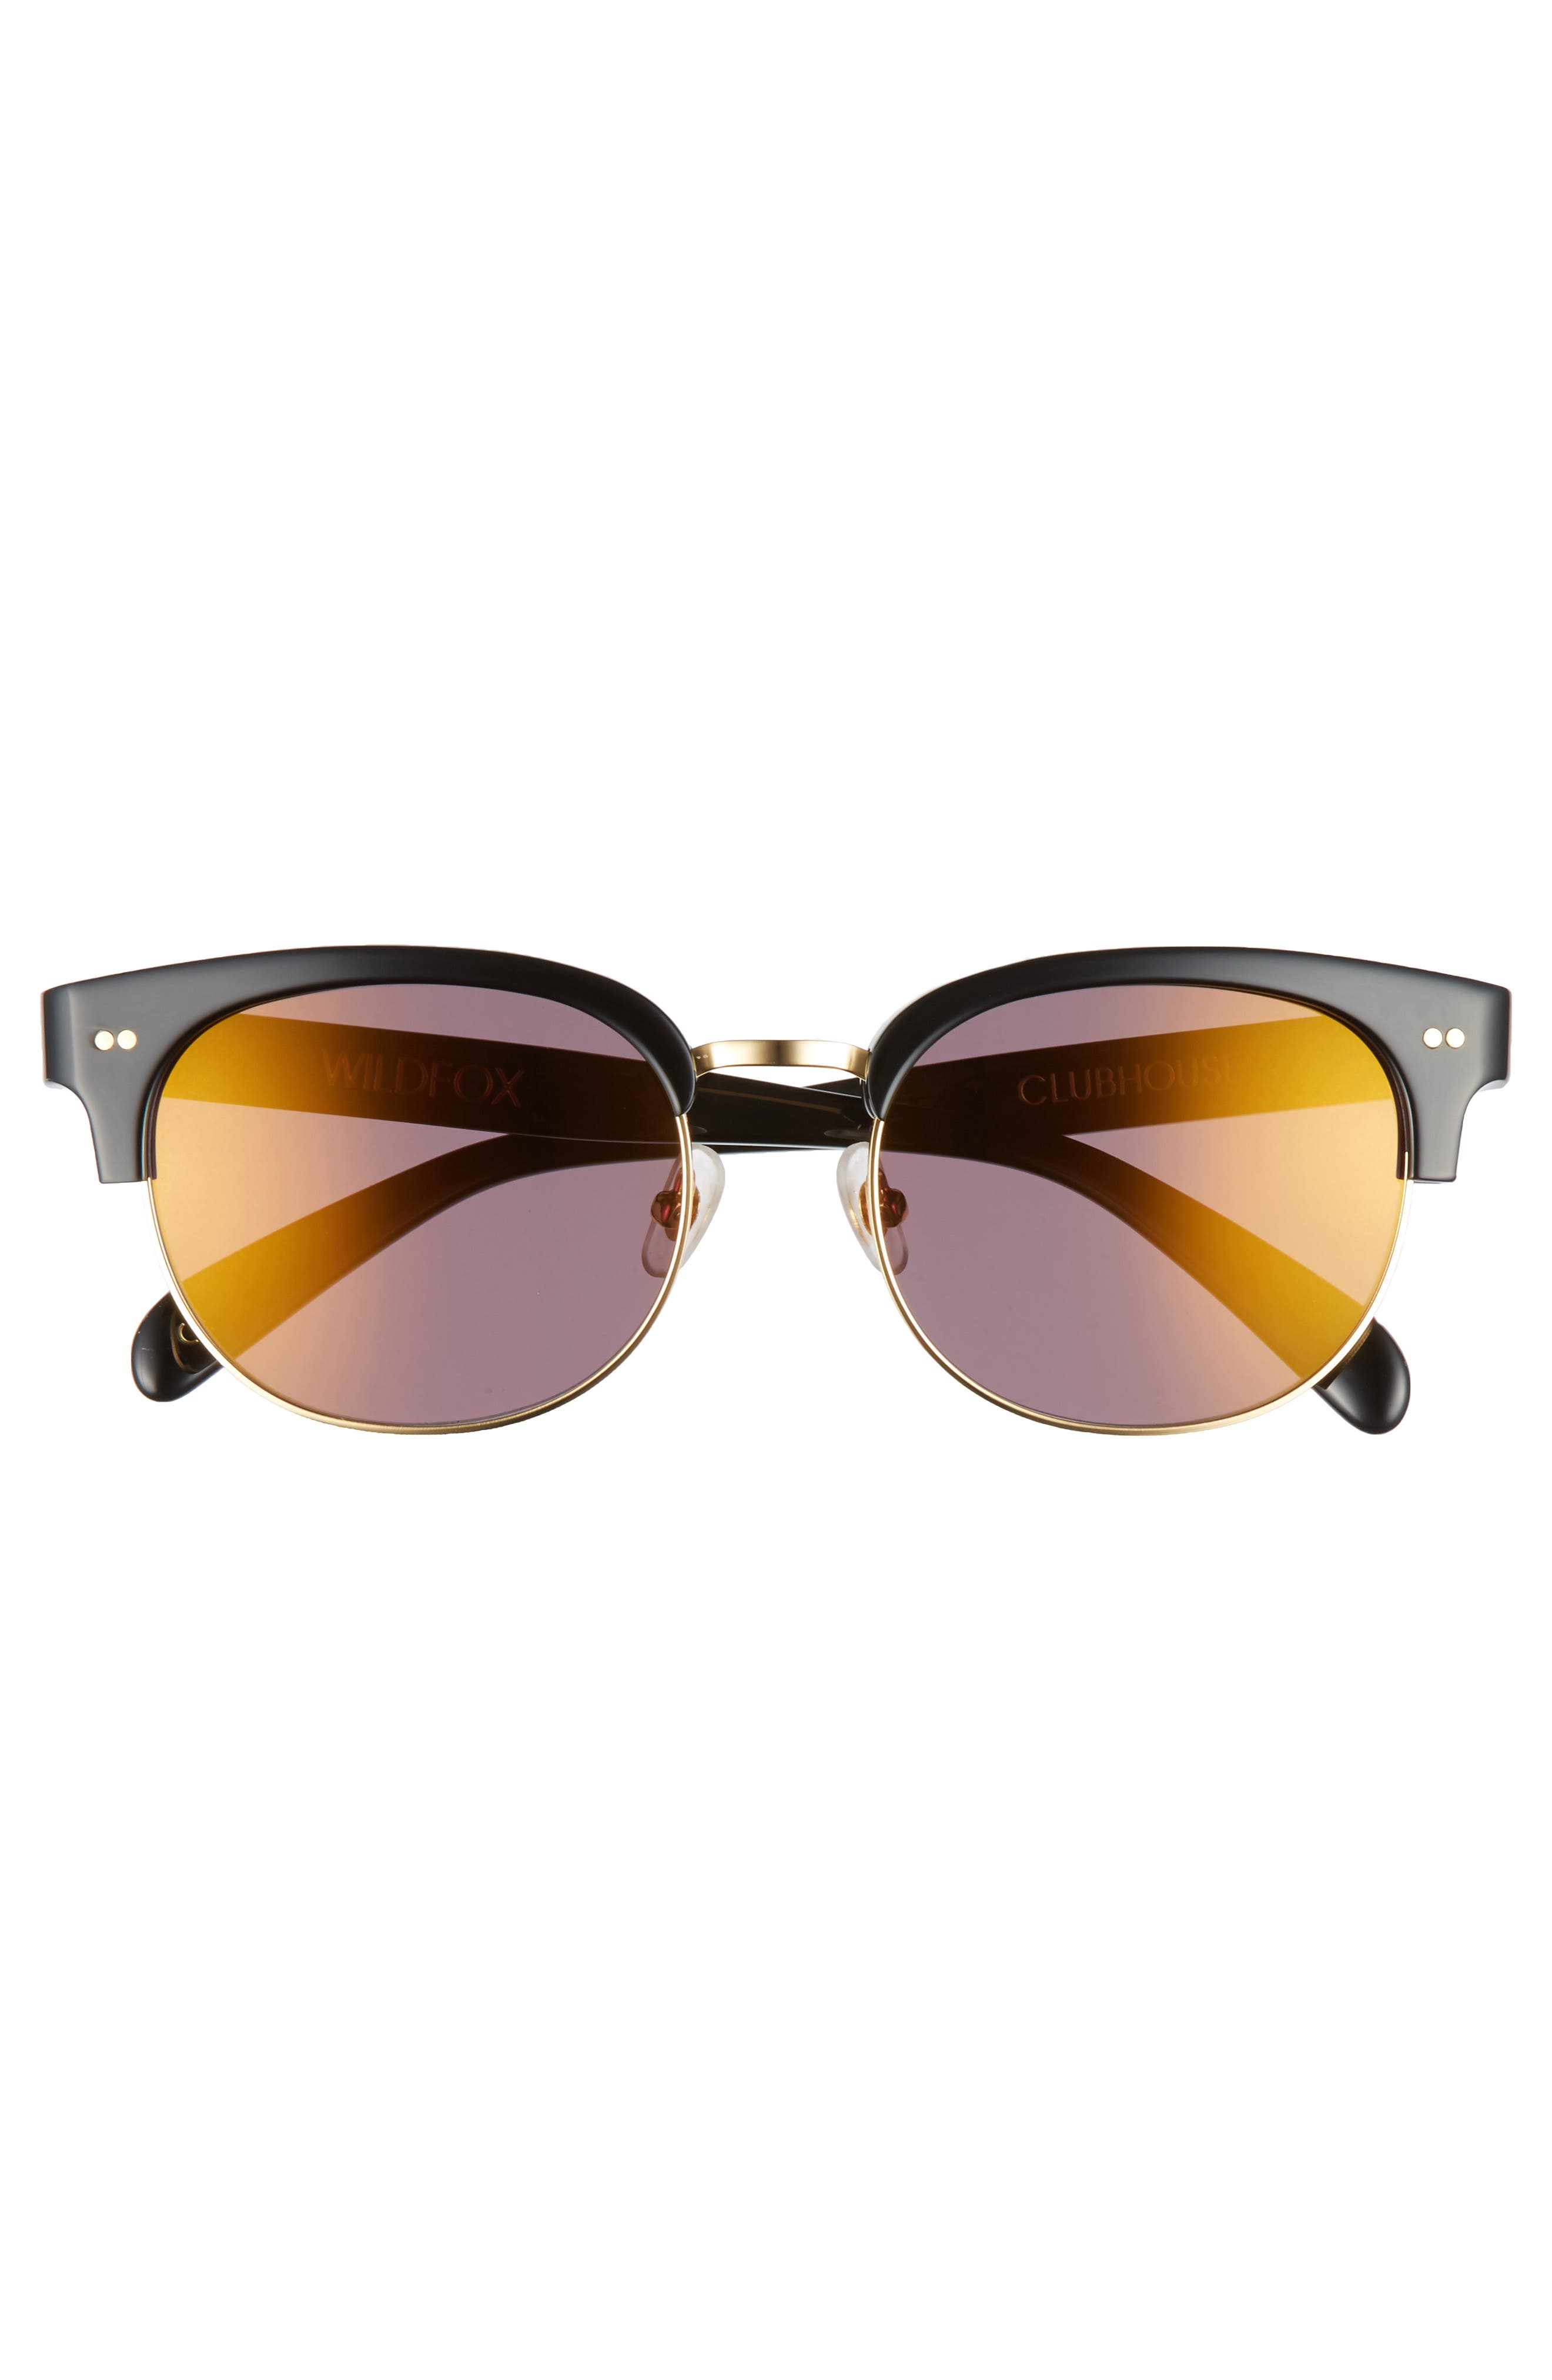 Clubhouse 50mm Semi-Rimless Sunglasses,                             Alternate thumbnail 3, color,                             BLACK/ GOLD